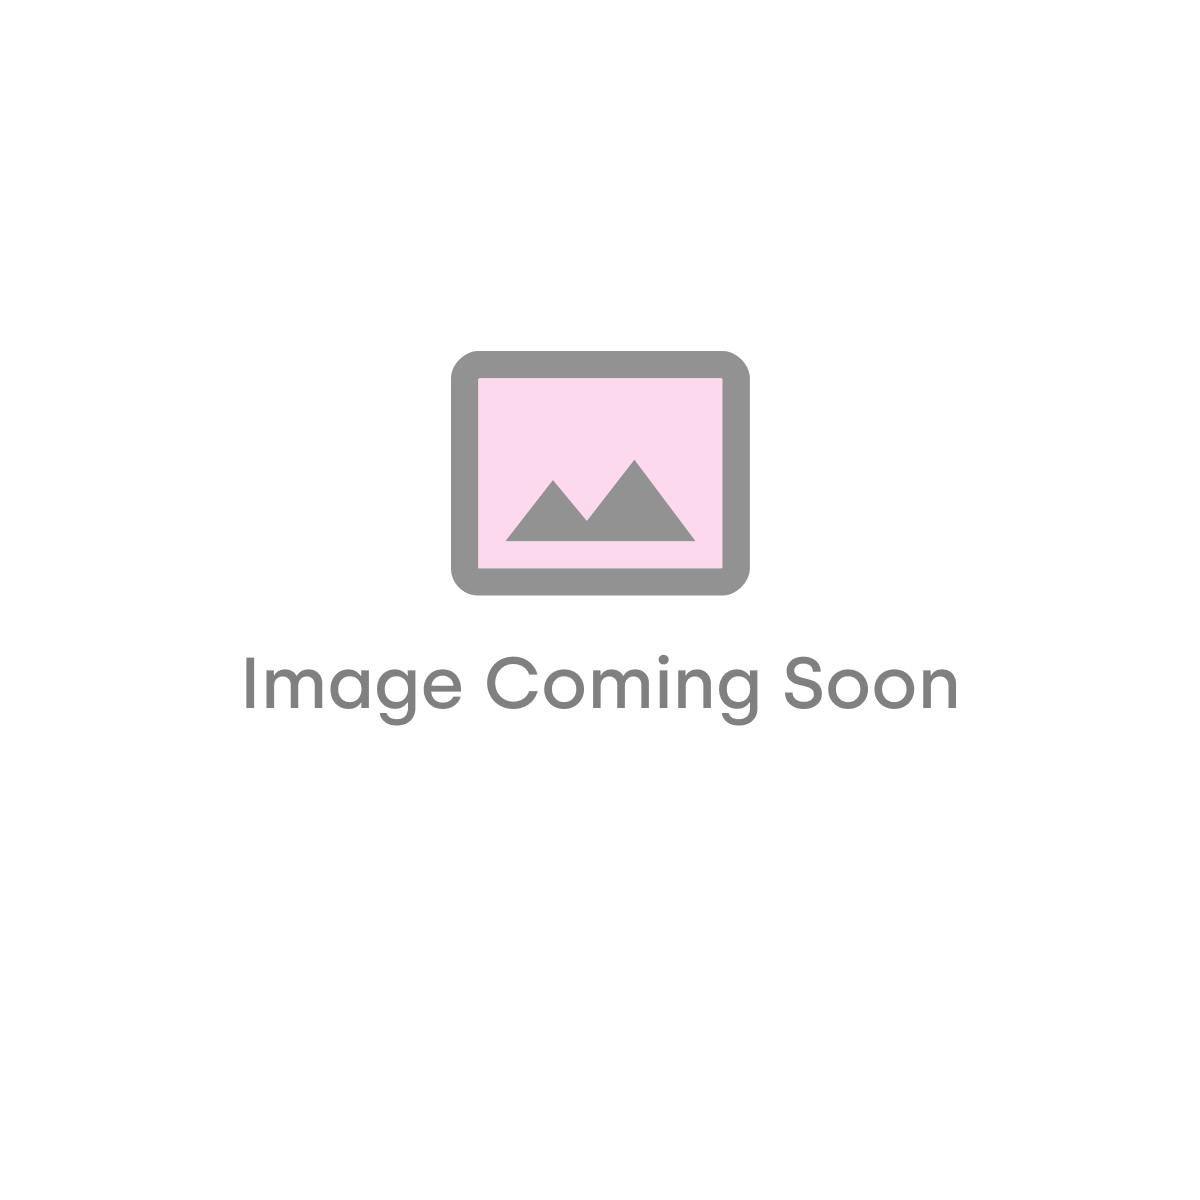 Aquadart 10 600mm Wetroom Panel - Smoked Glass (18677)